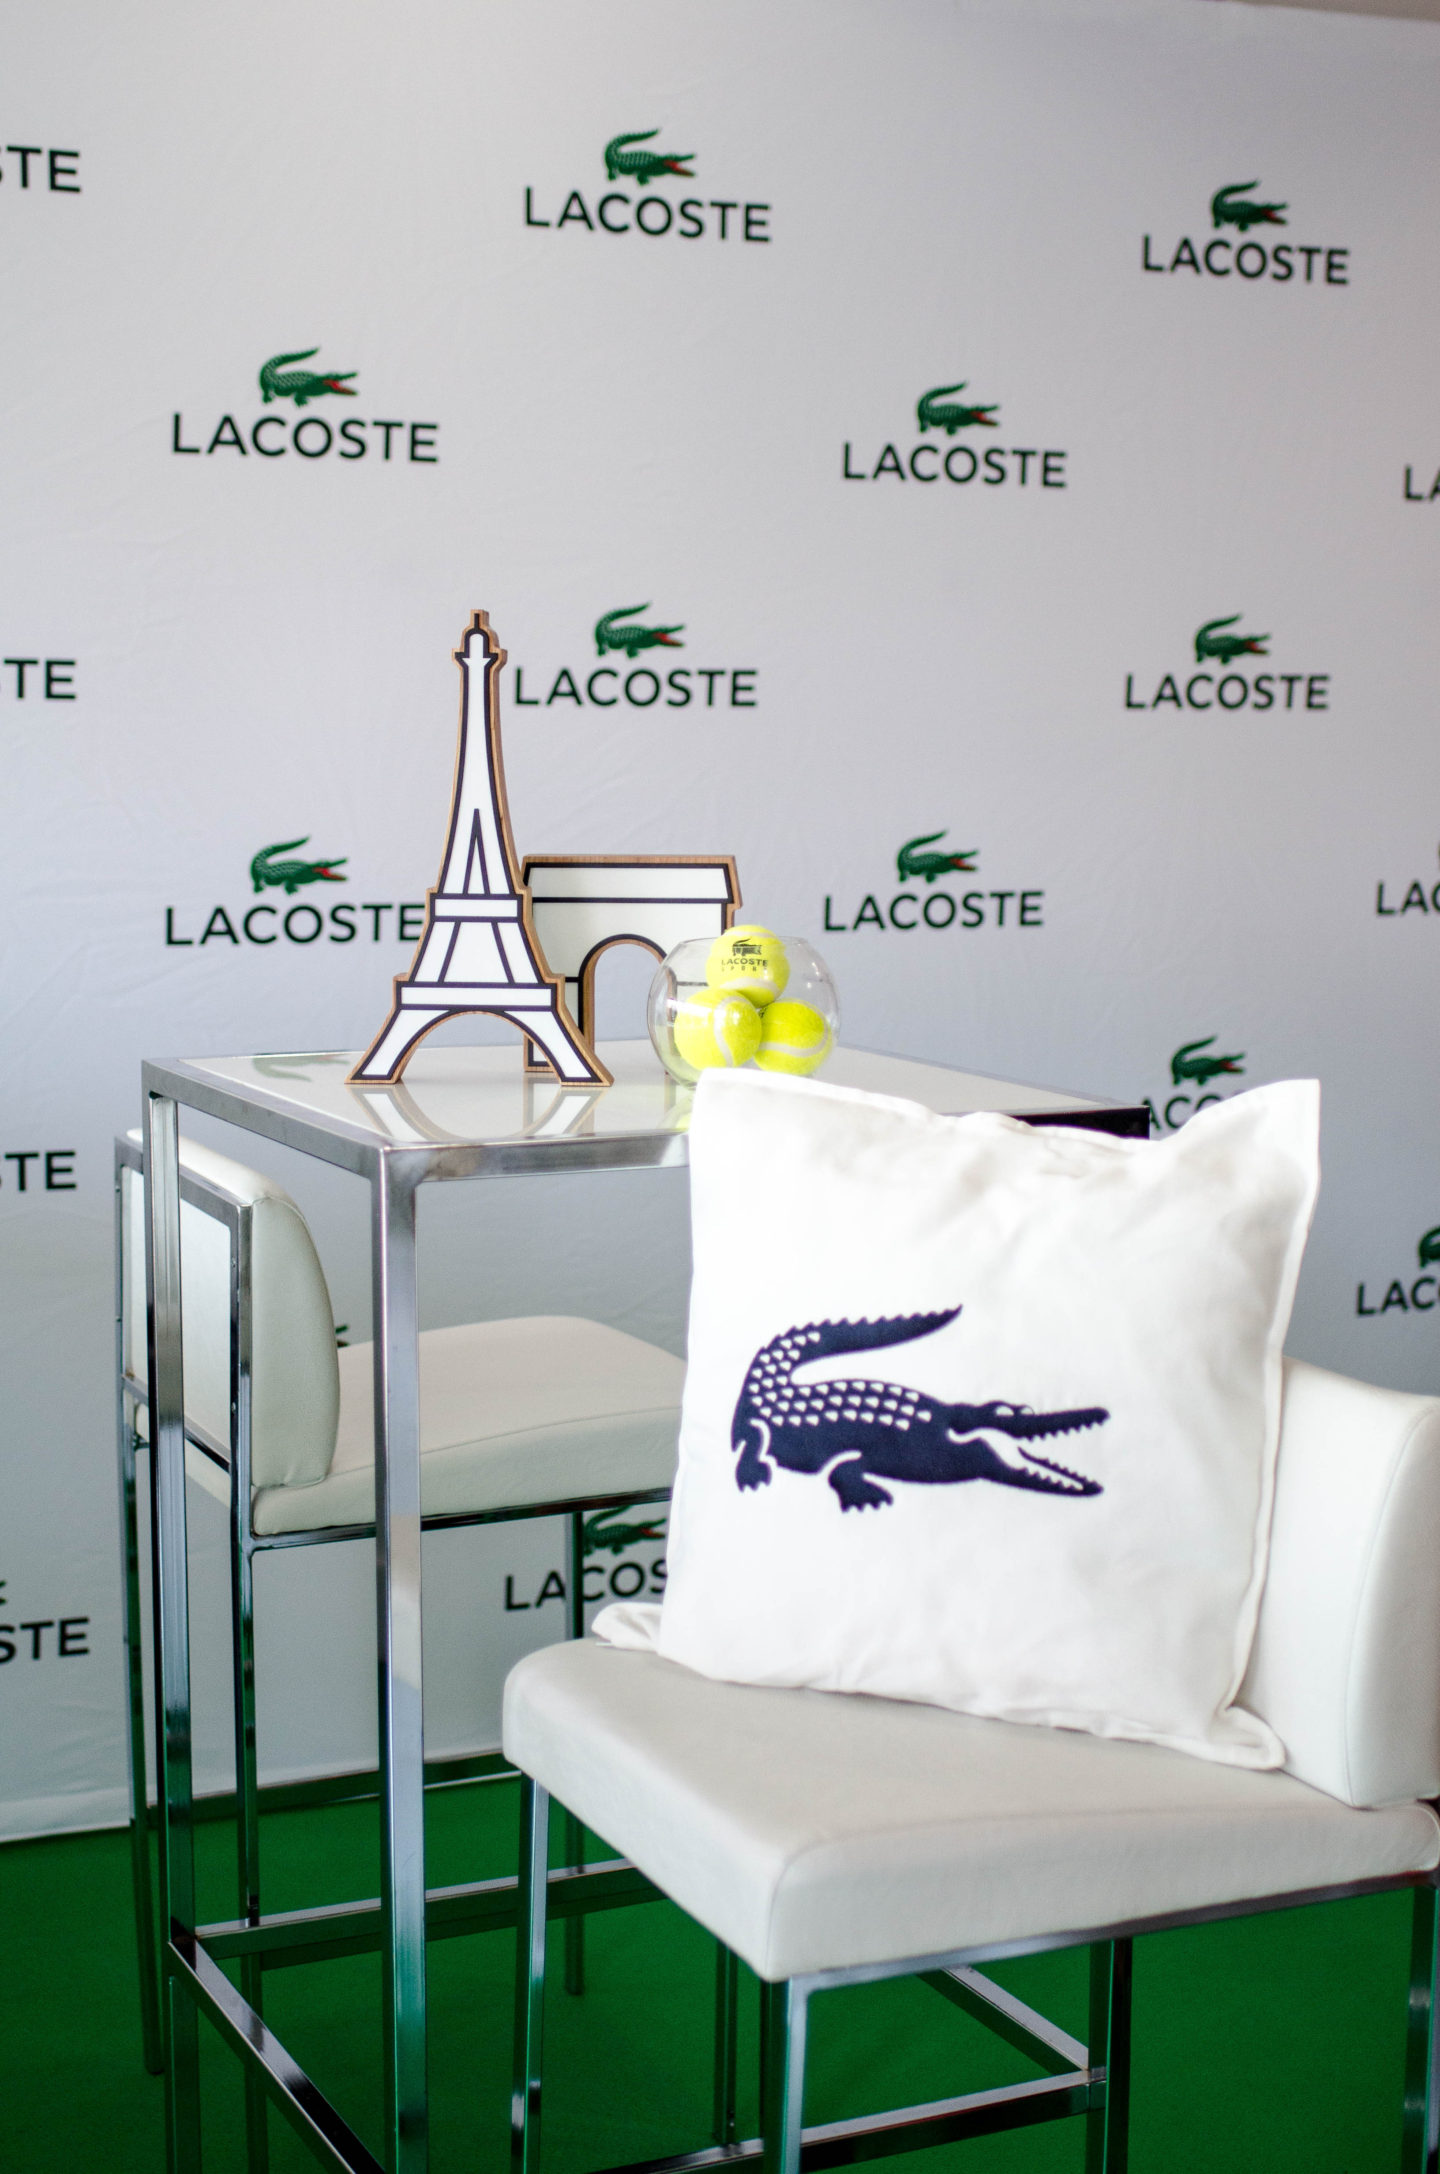 ENJOYING THE SUITE LIFE WITH LACOSTE